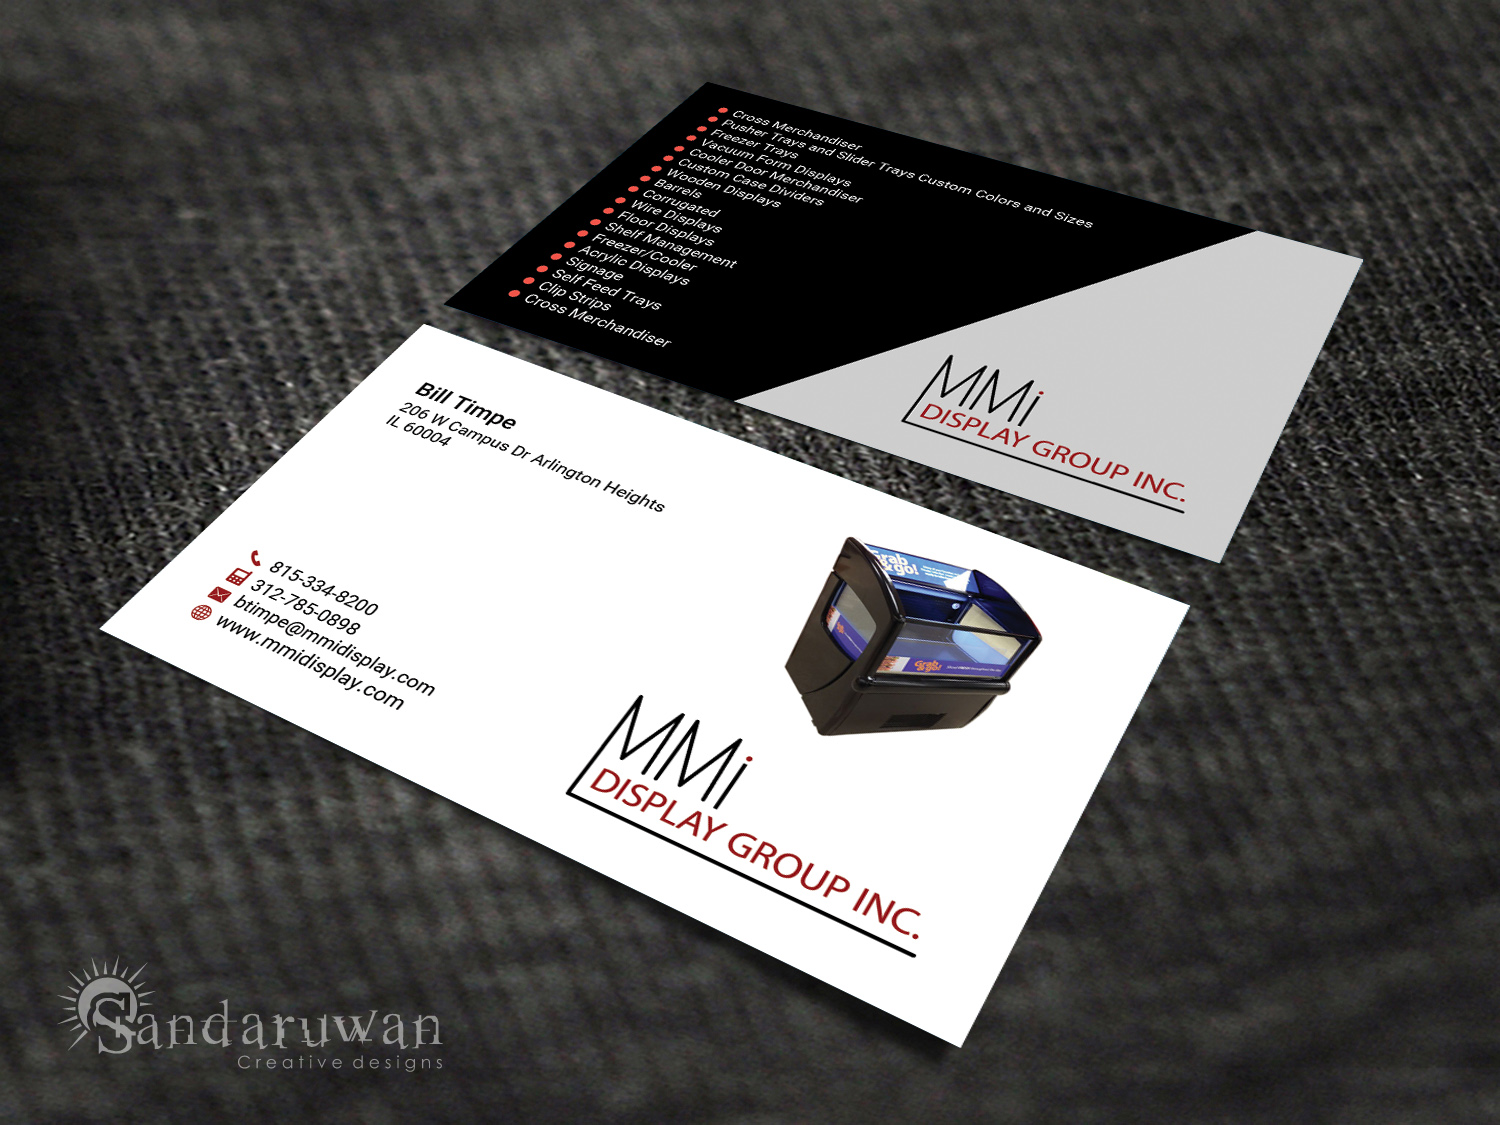 Bold, Serious, Business Business Card Design for MMI DISPLAY GROUP ...